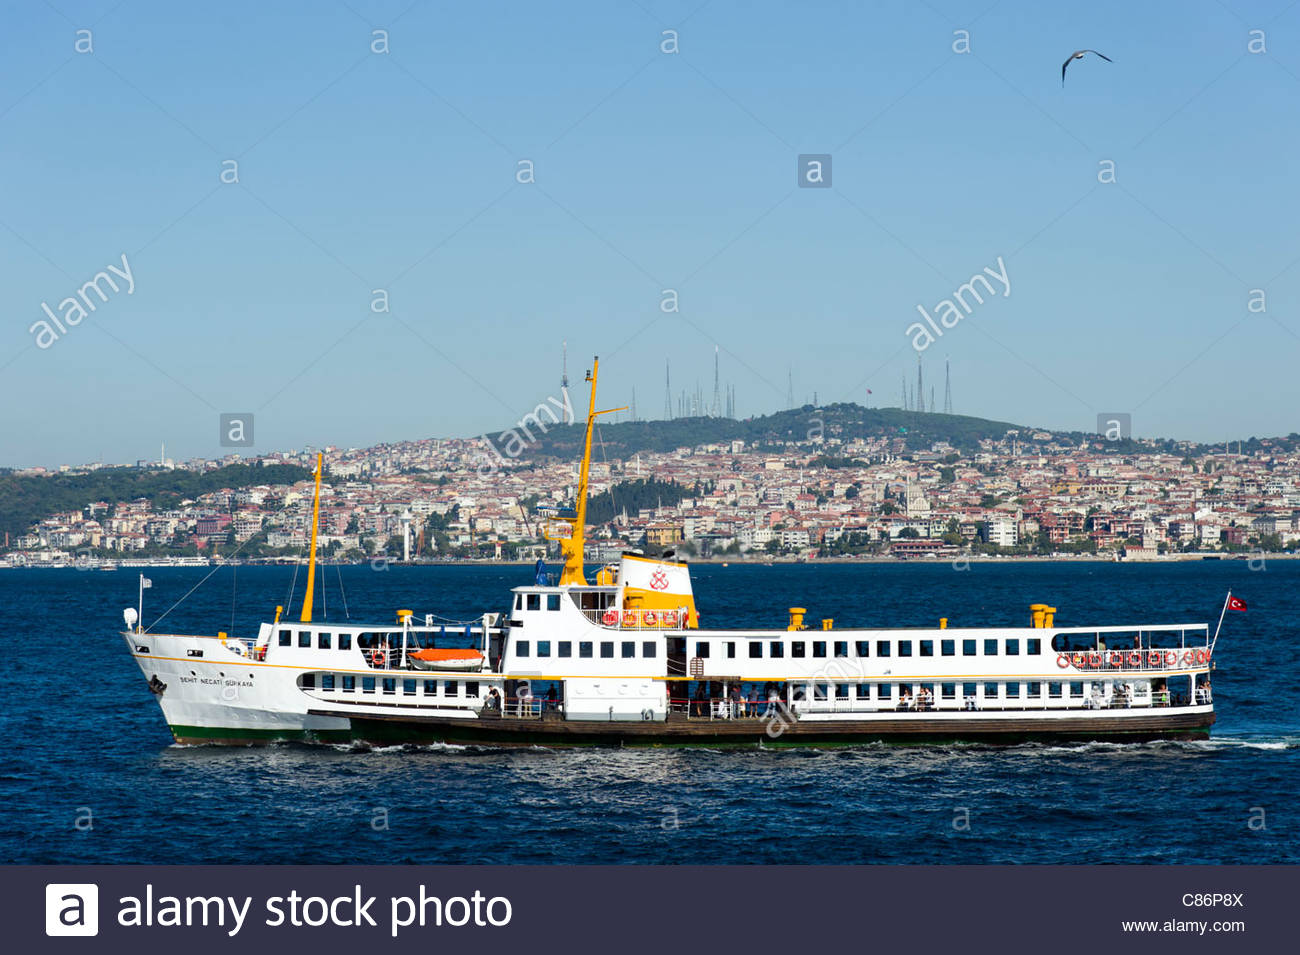 Ferry on the Bosphorus with the Asia side behind, Istanbul, Turkey - Stock Image